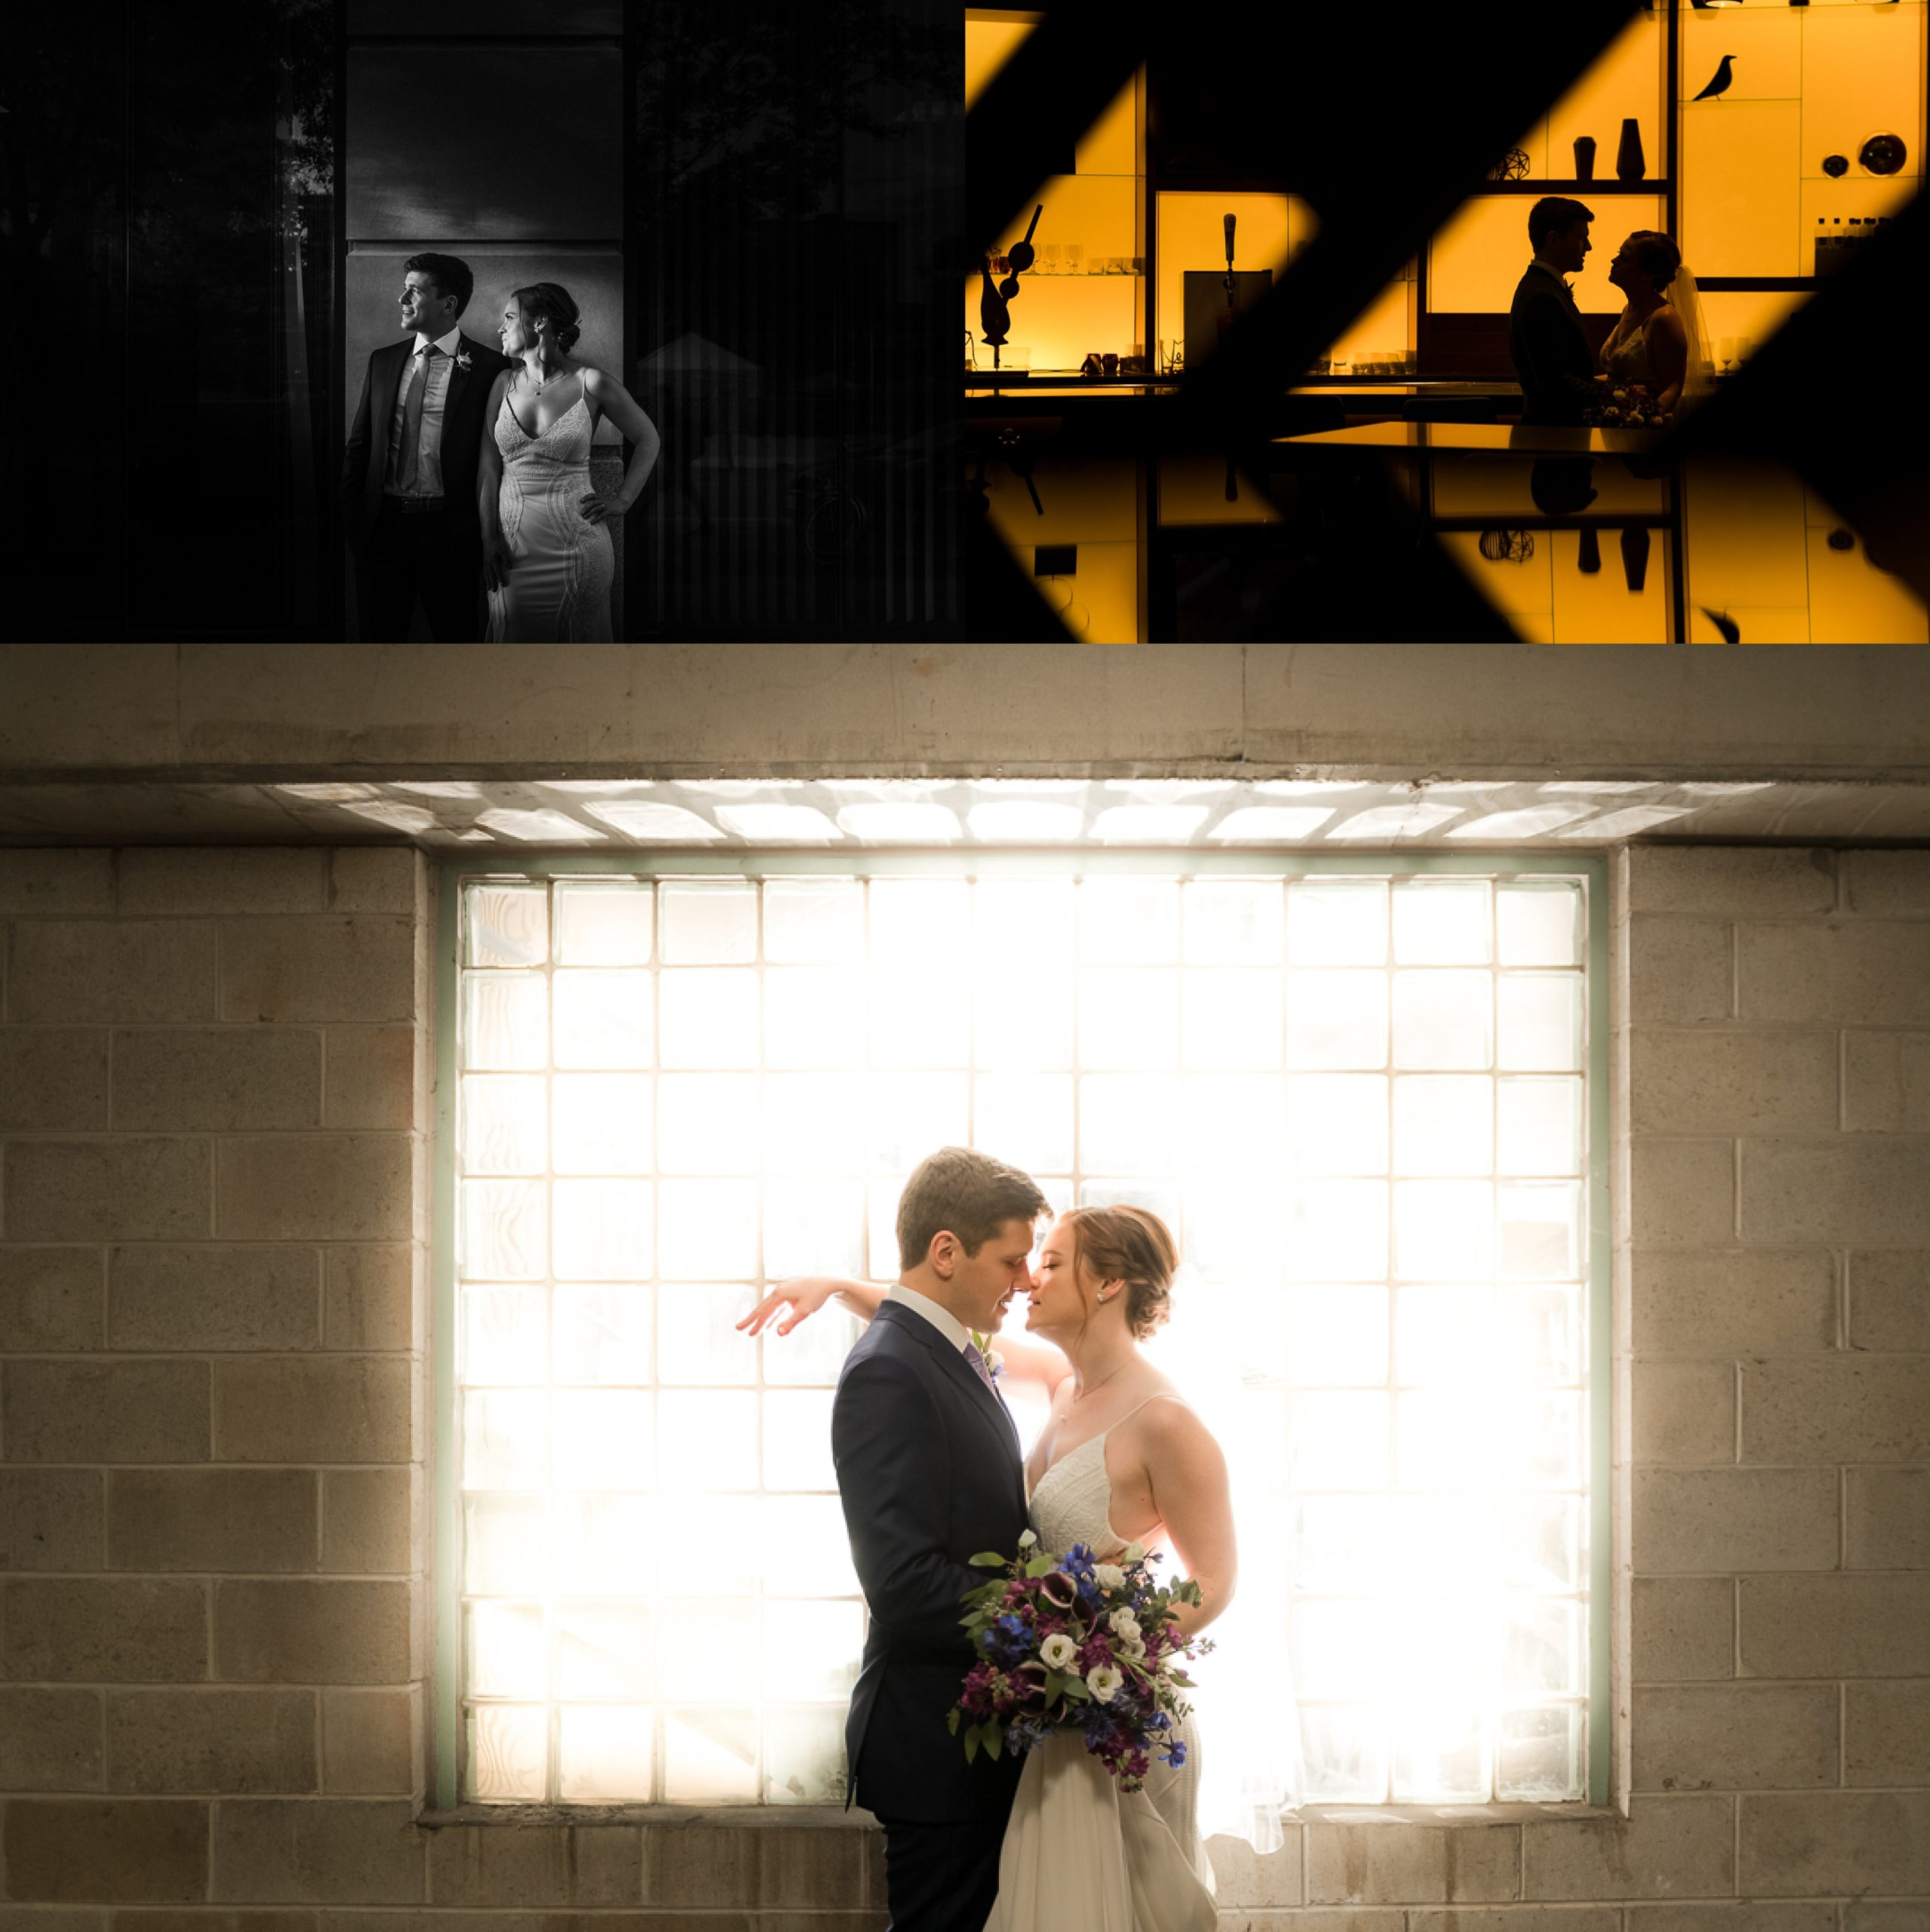 Why you should trust your professional photographer